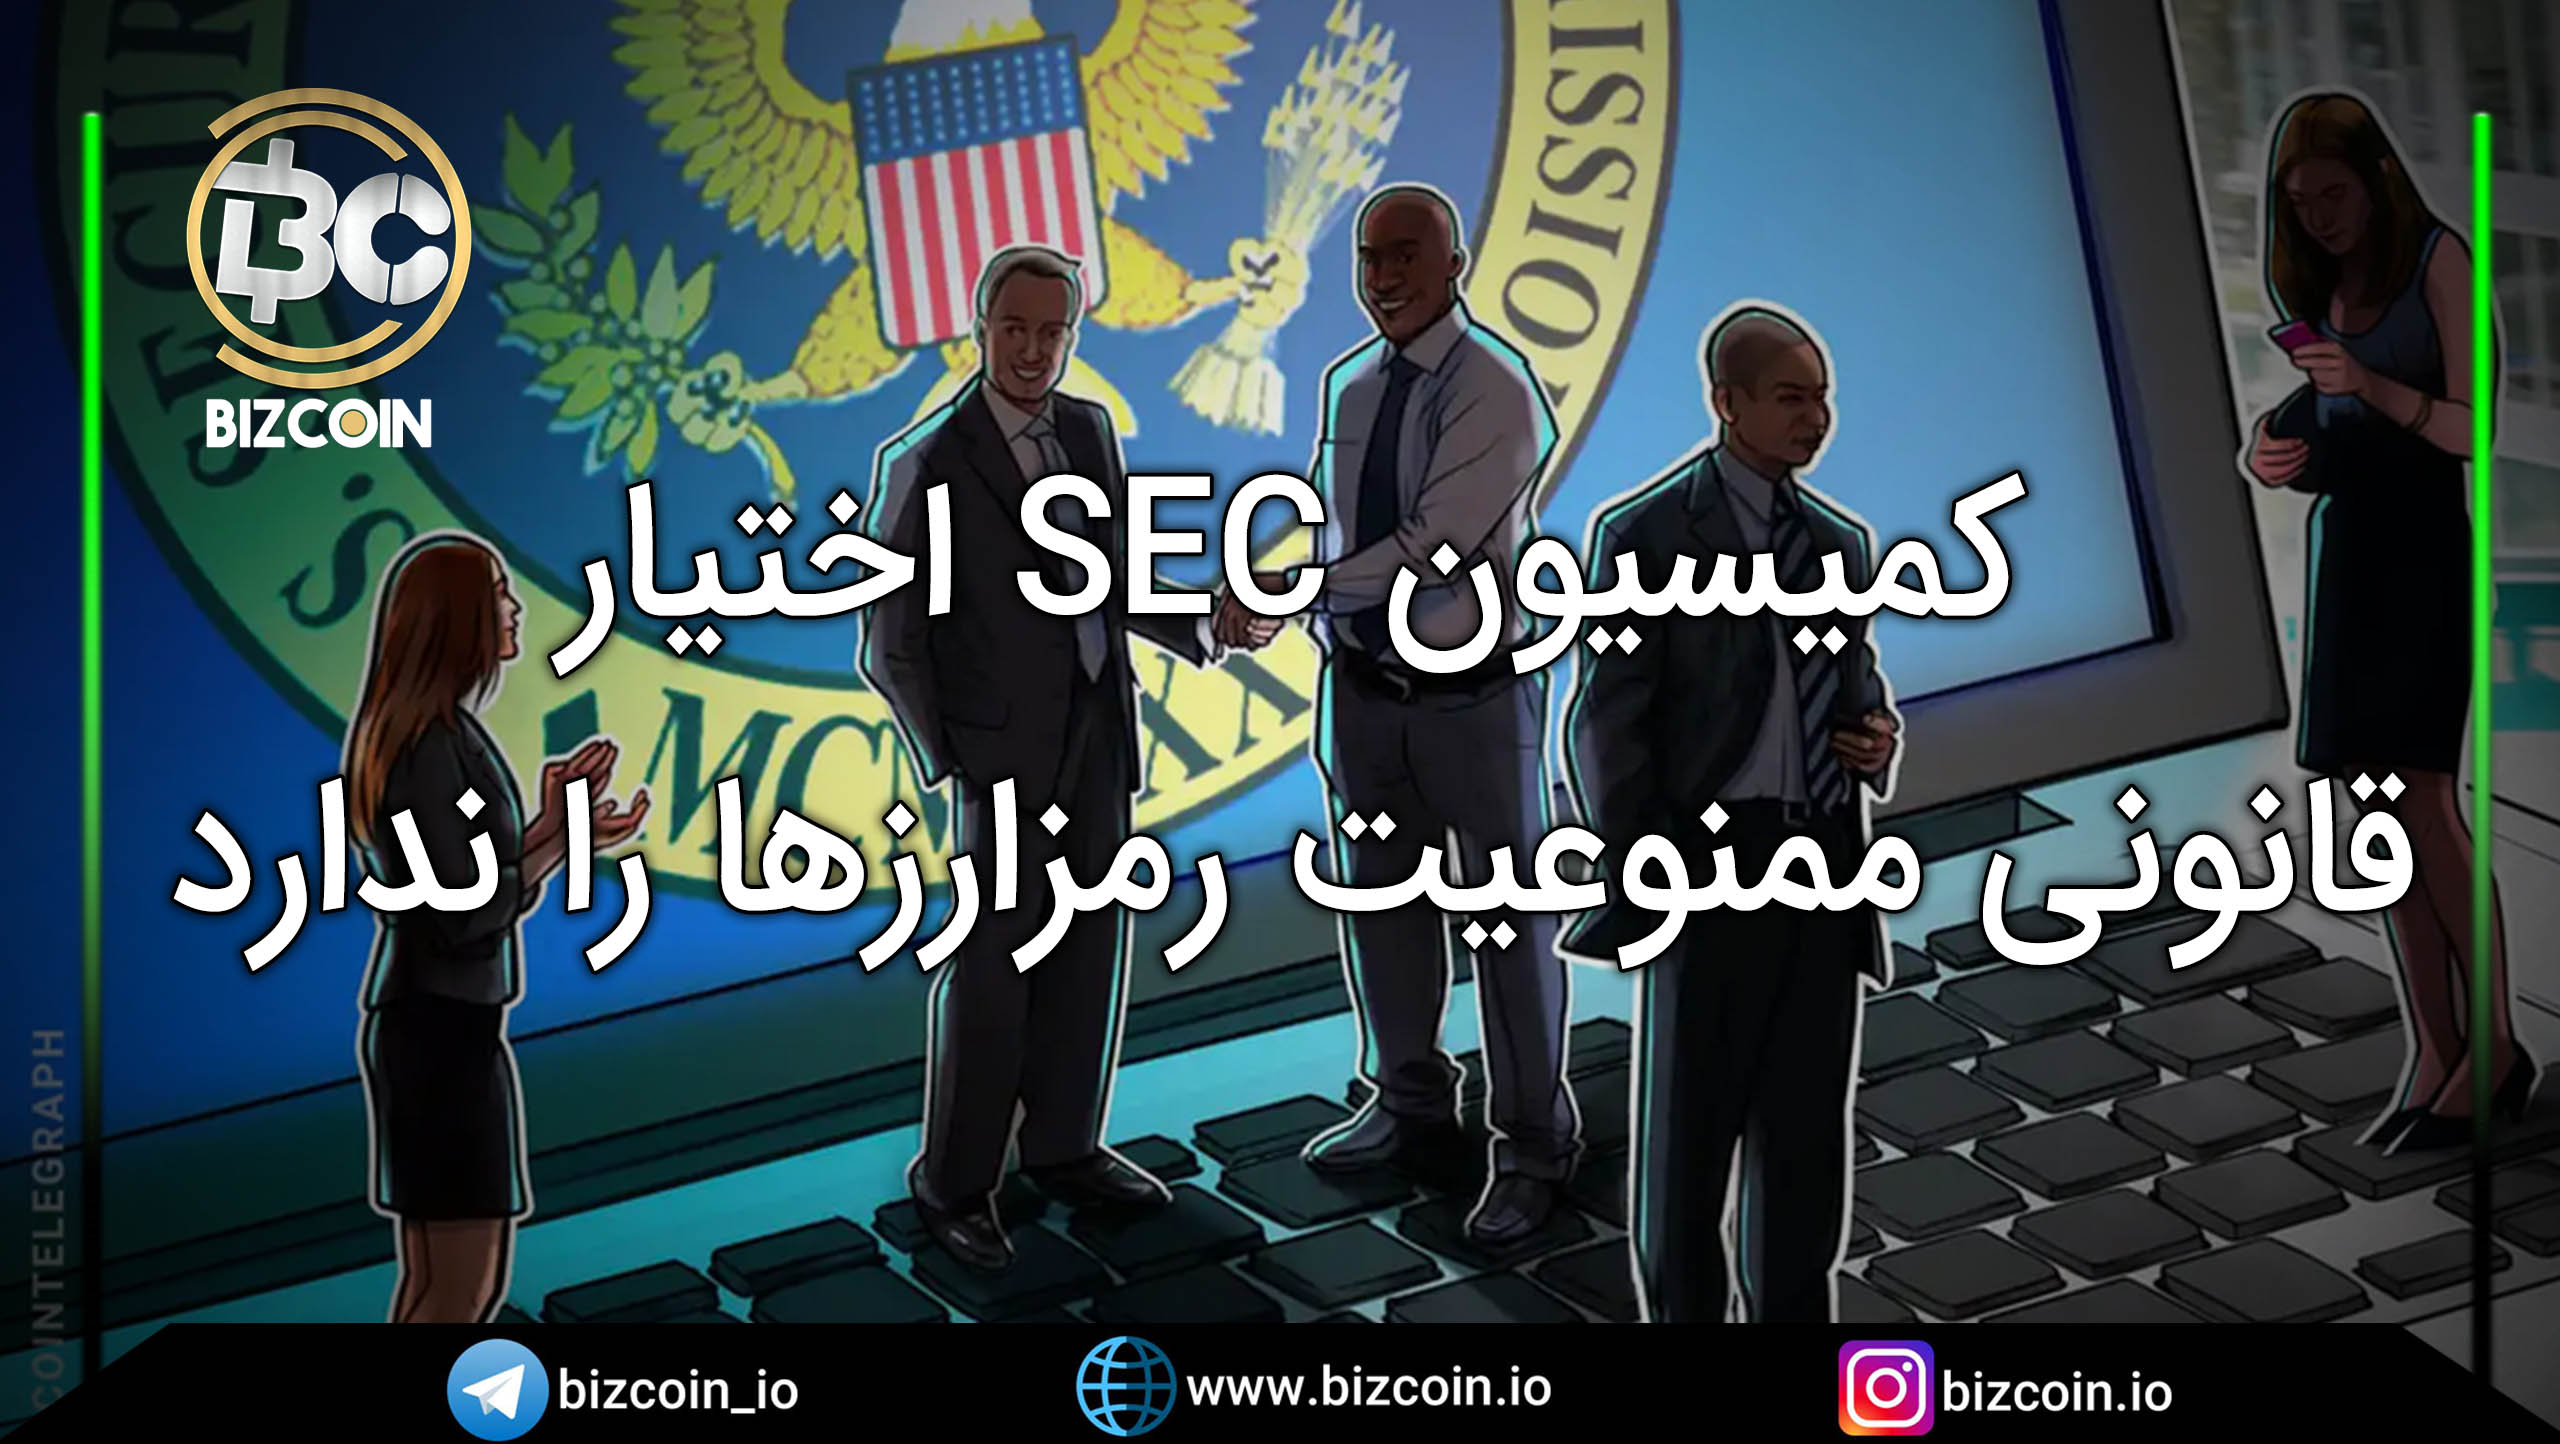 The SEC does not have the legal authority to ban cryptocurrencies کمیسیون SEC اختیار قانونی ممنوعیت رمزارزها را ندارد